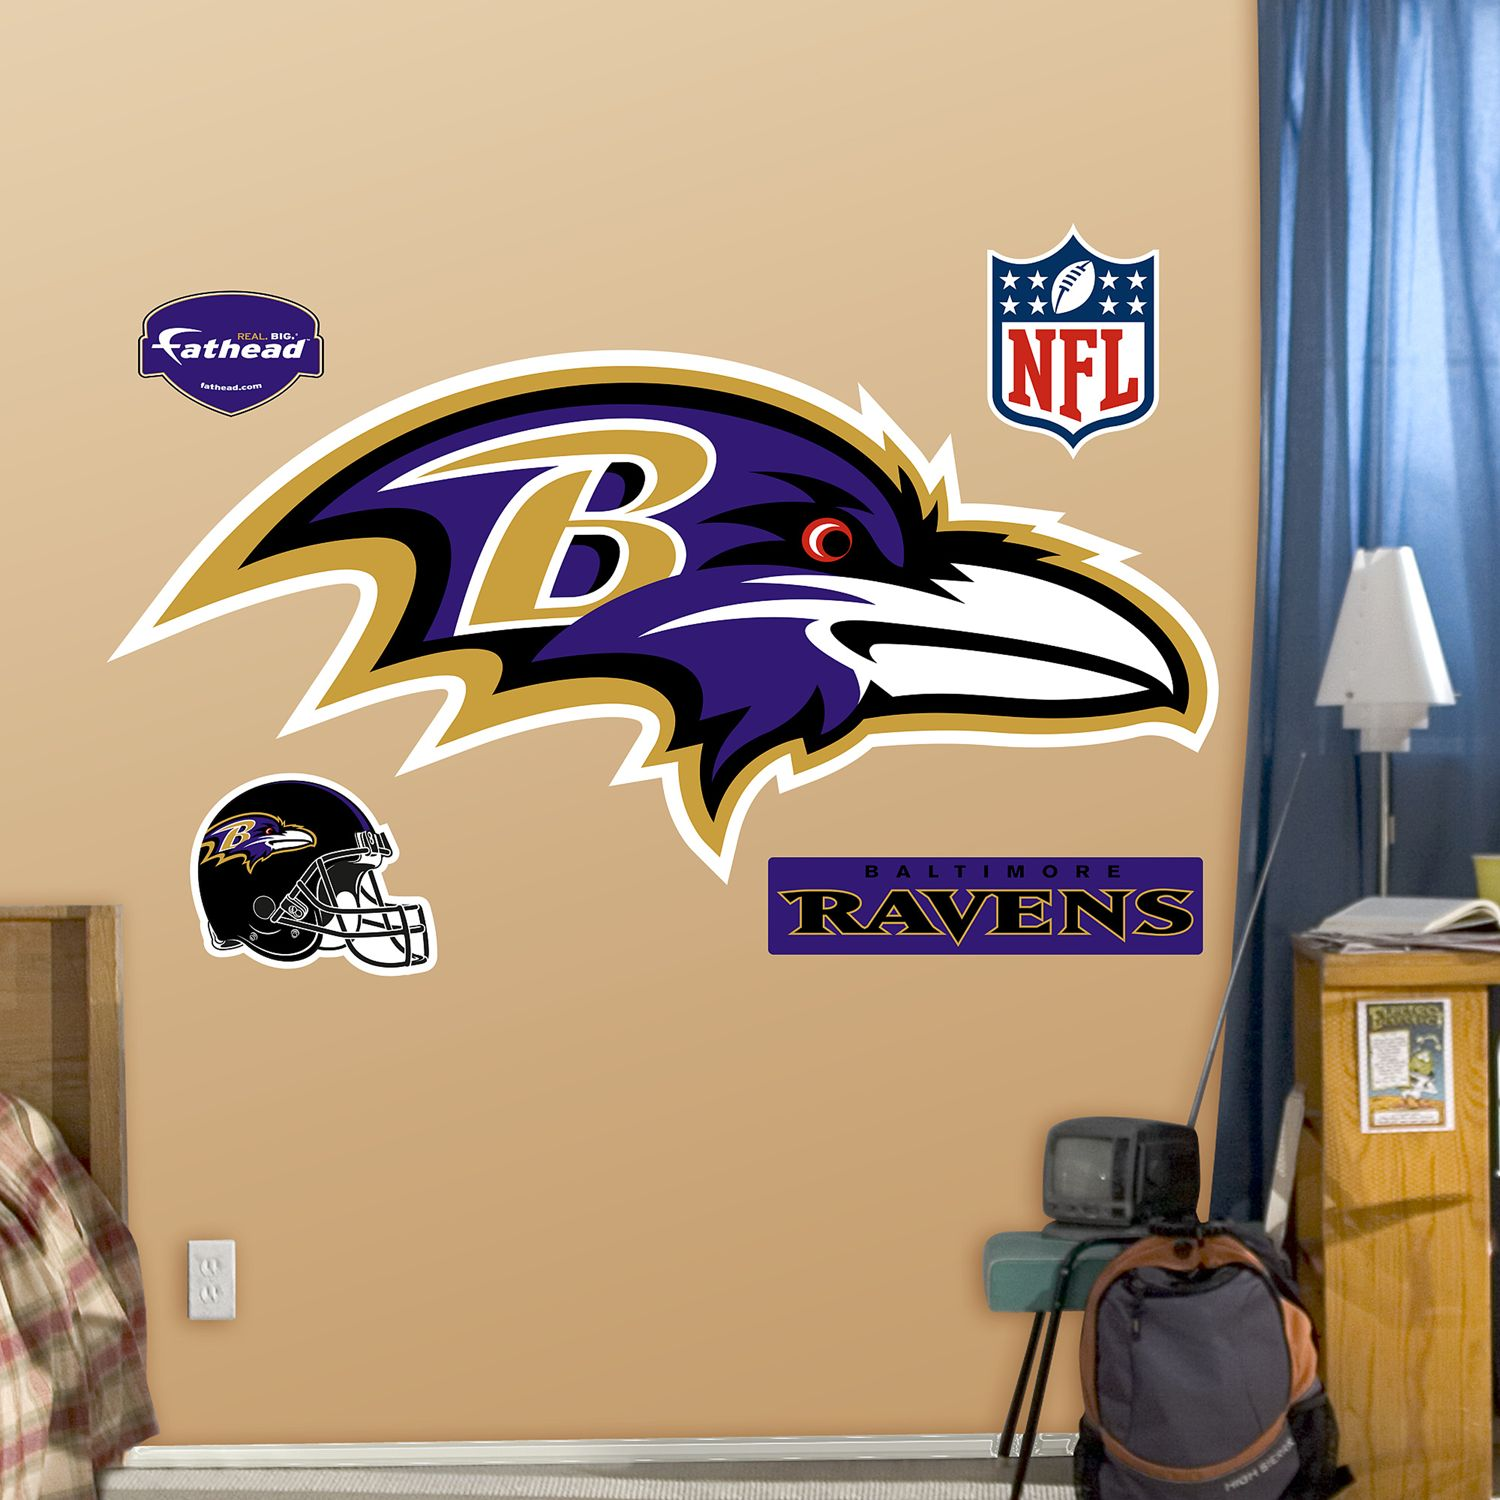 & Fathead Baltimore Ravens Logo Wall Decals